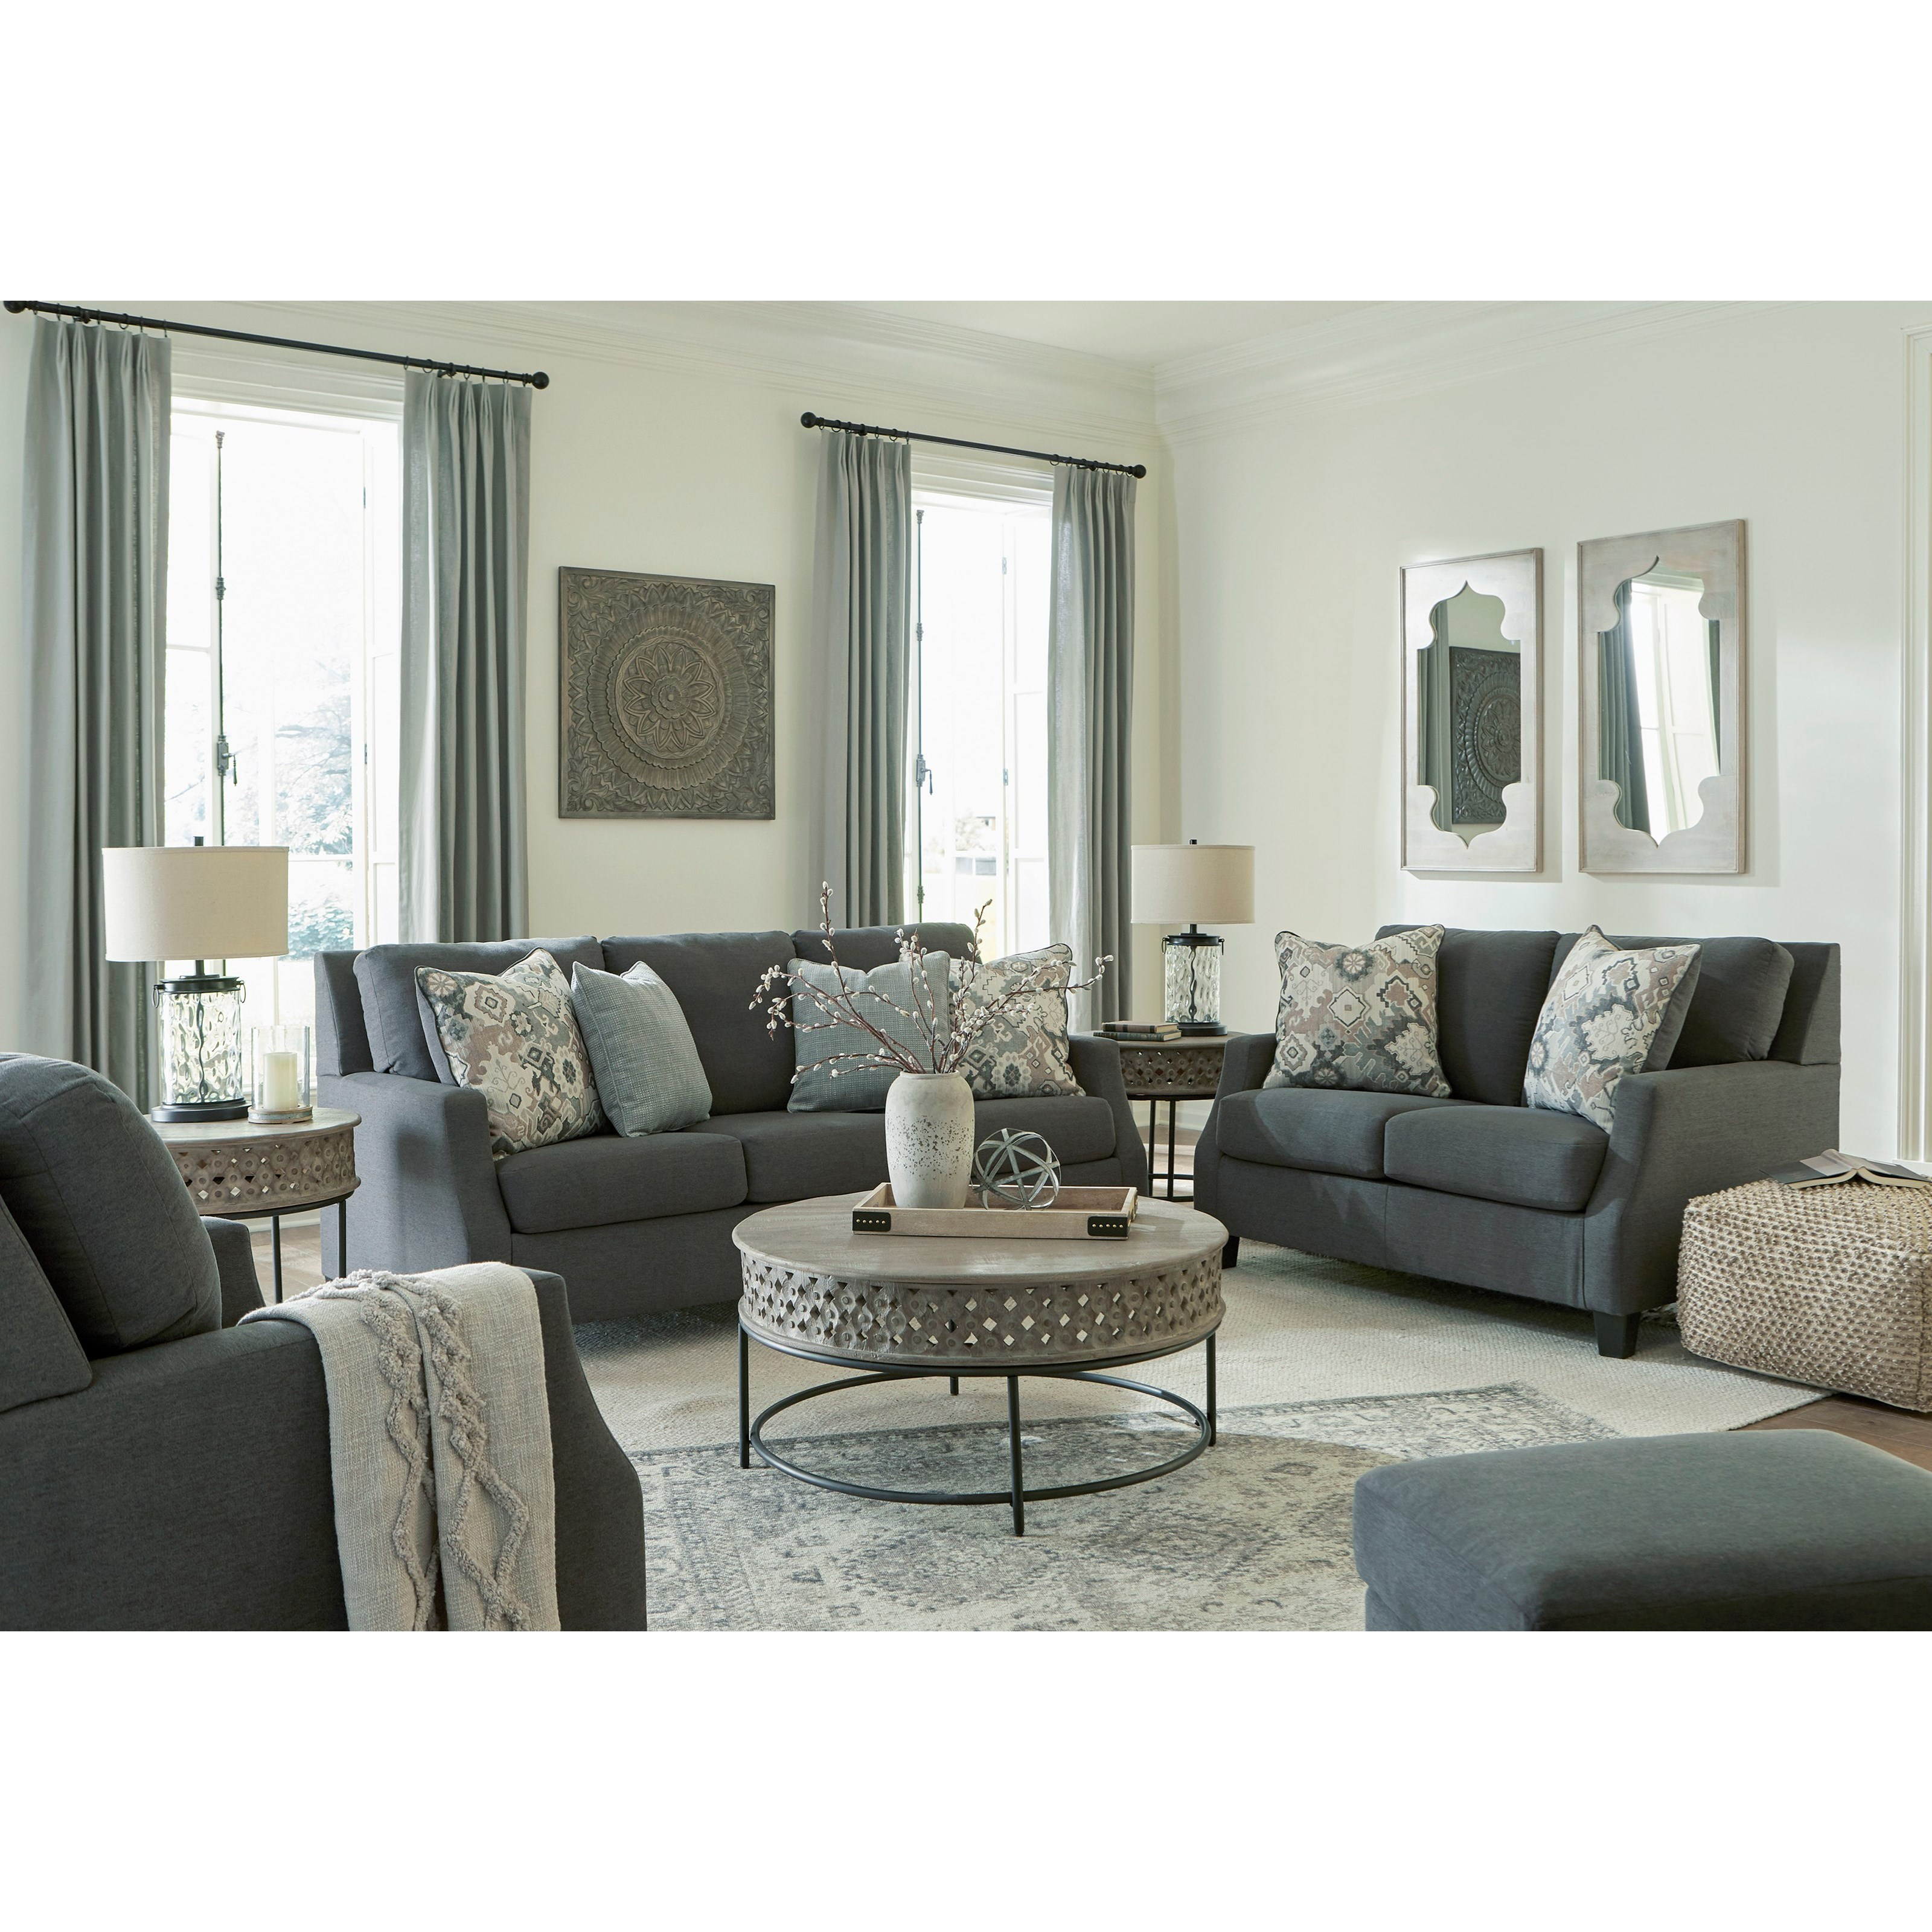 Bayonne Living Room Group by Signature Design by Ashley at Goffena Furniture & Mattress Center